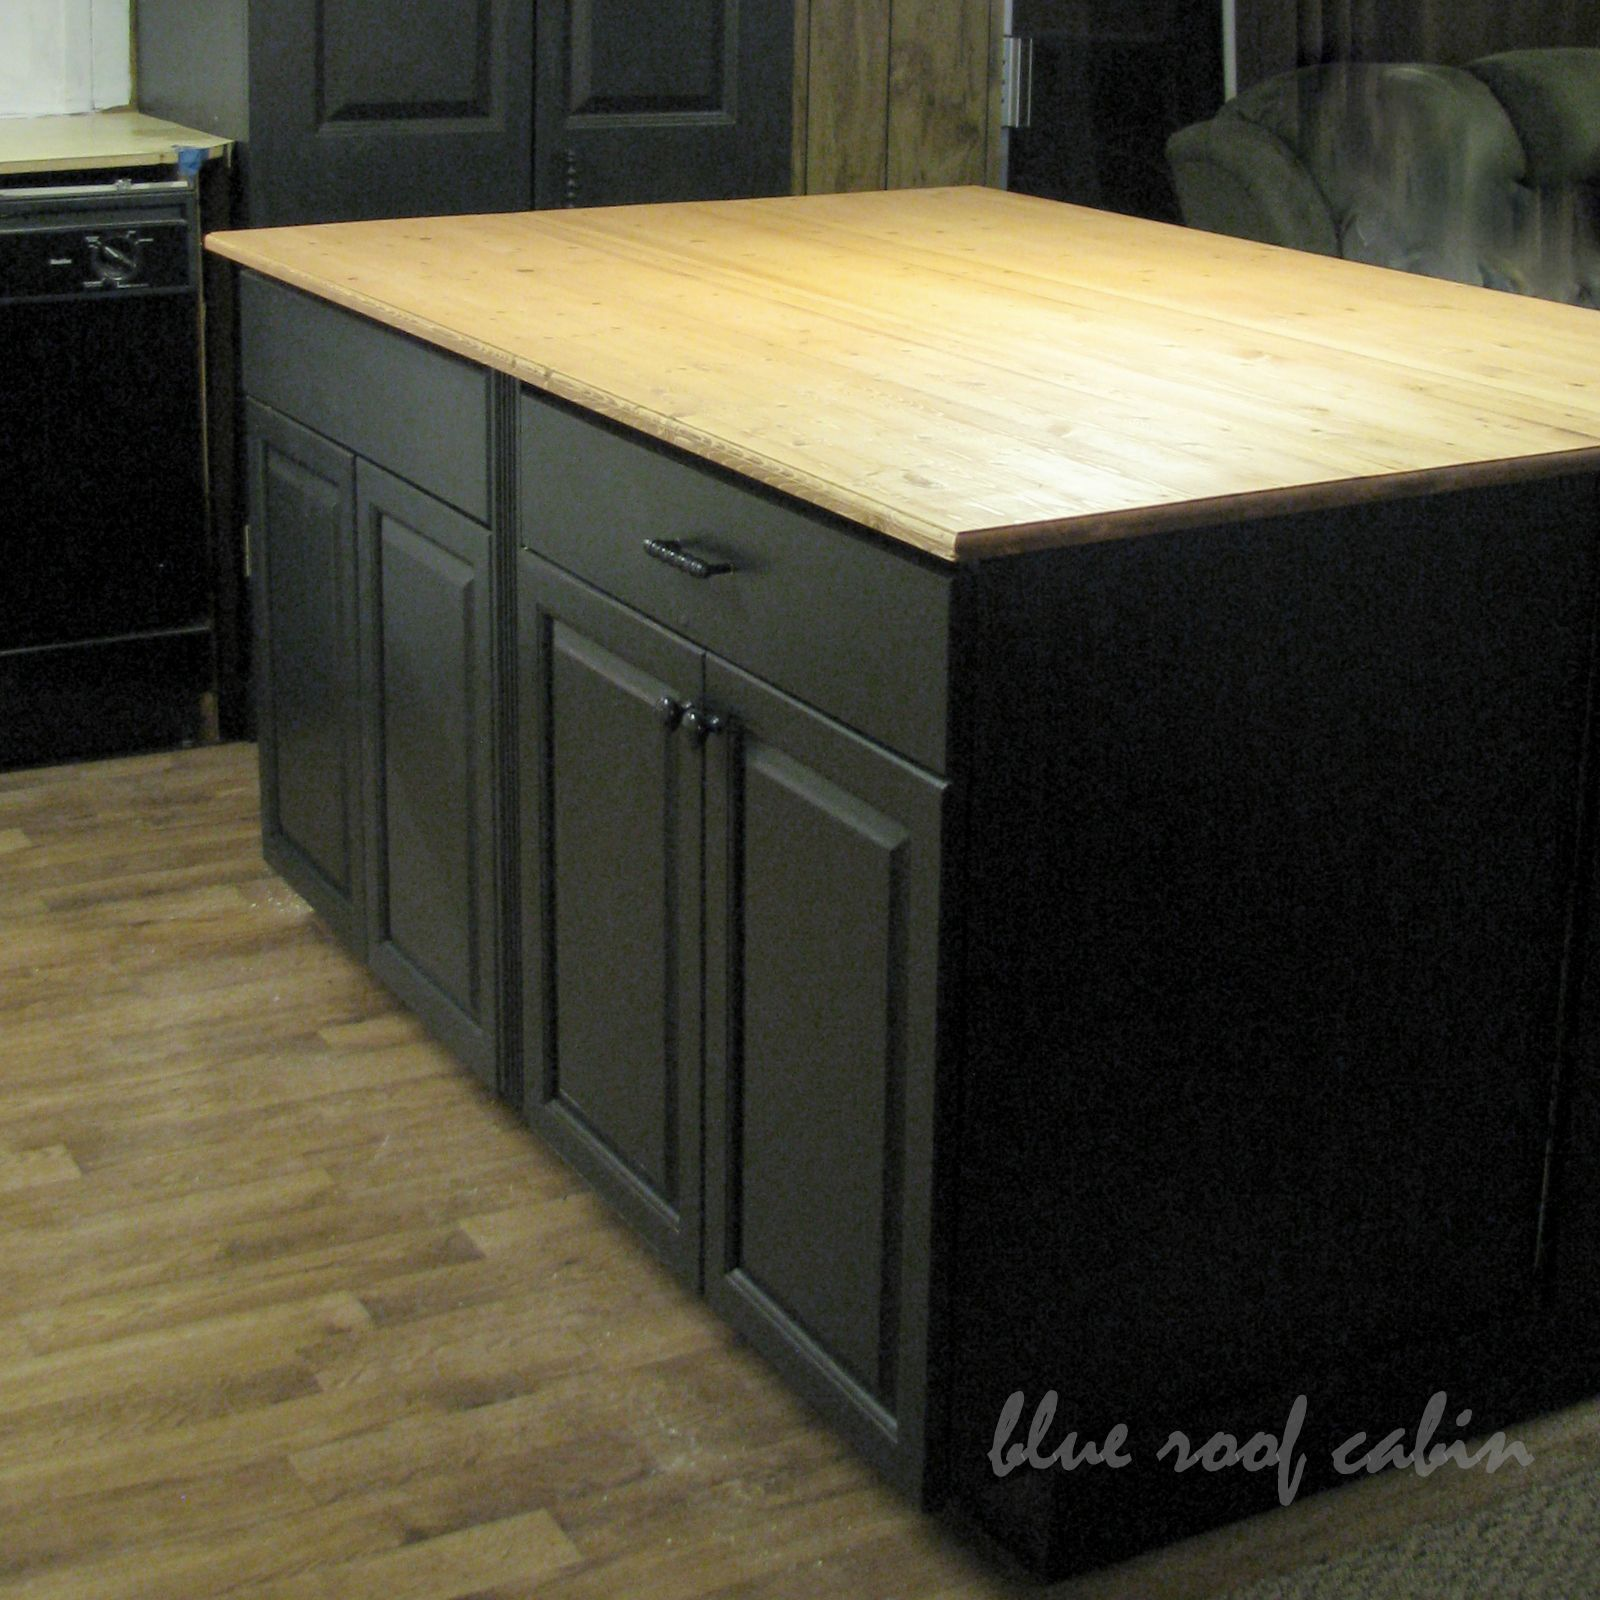 Building A Kitchen Island With Ikea Cabinets How To Build A Kitchen Island | Woodworking Ideas | Pinterest